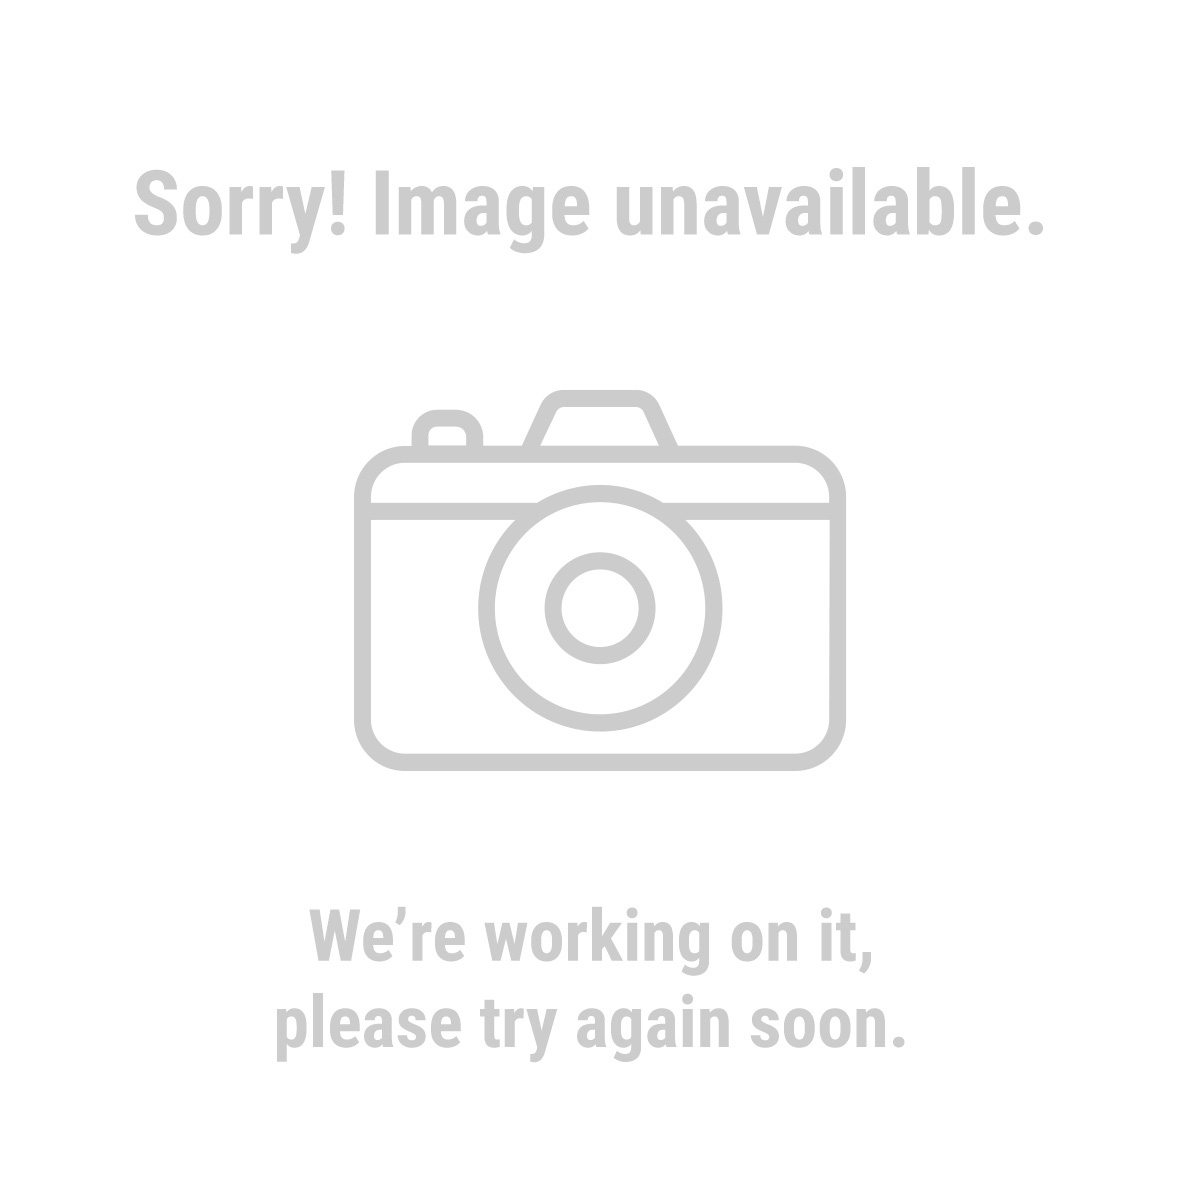 Pittsburgh® 62242 4 in. Ratchet Bar Clamp/Spreader